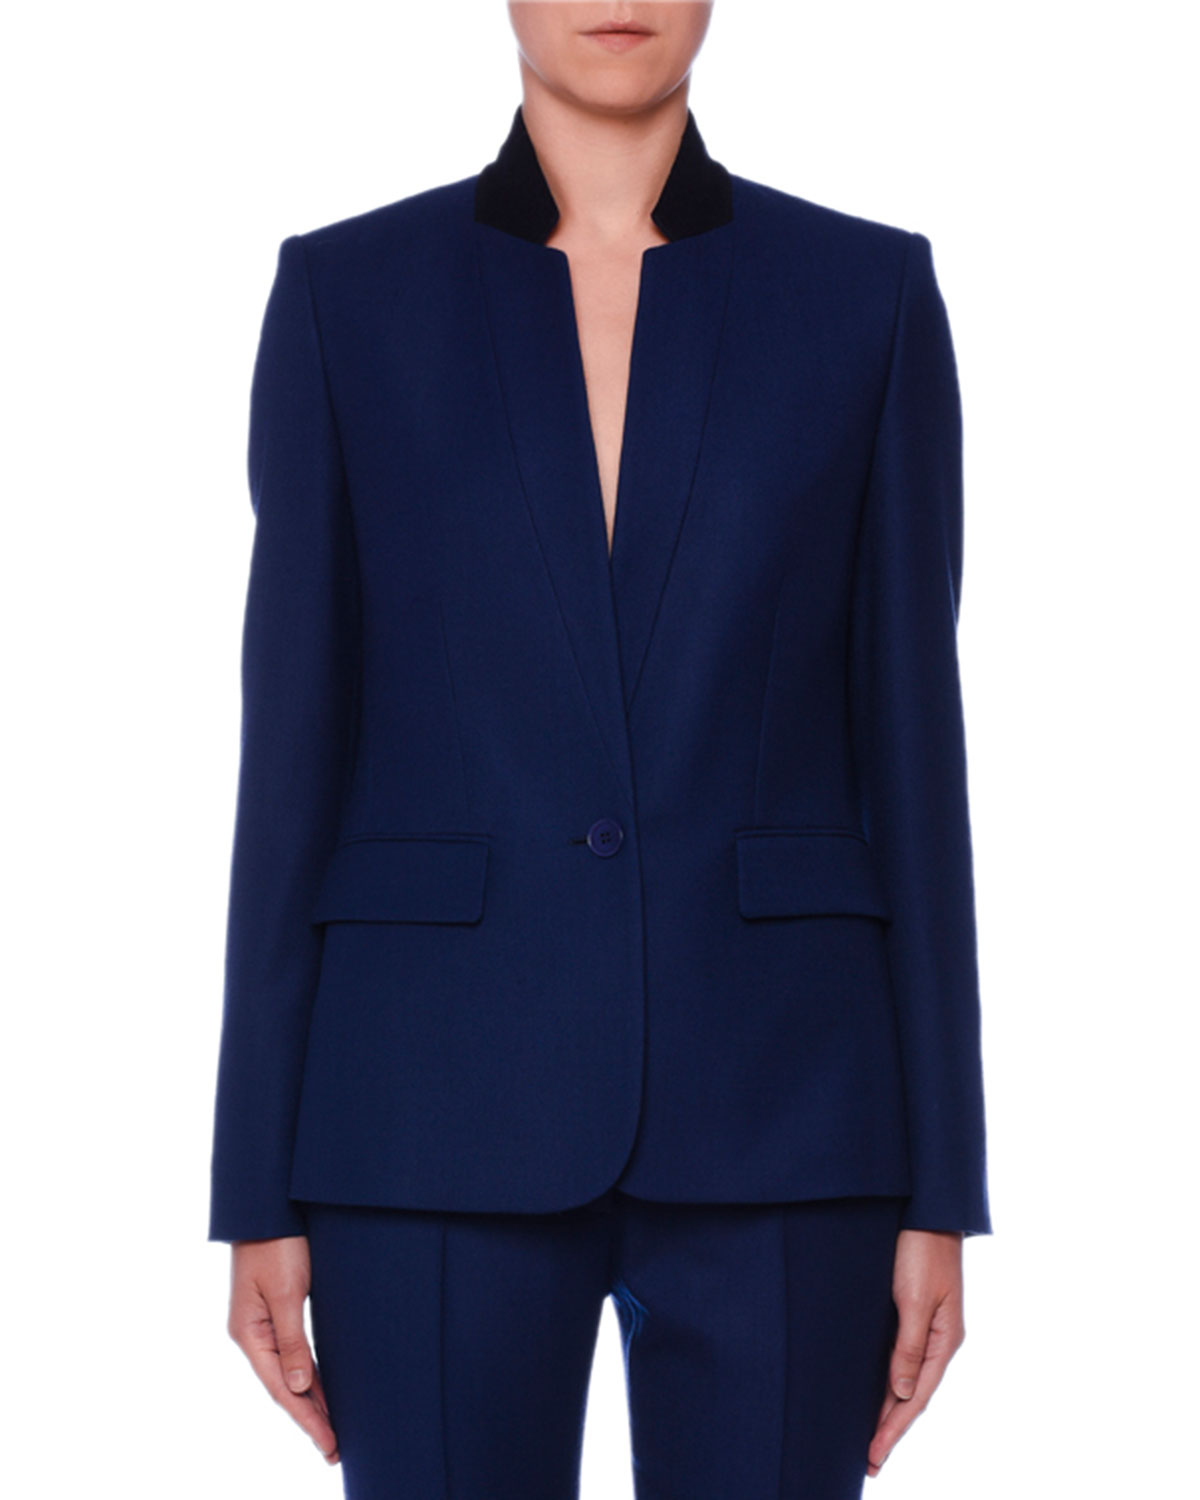 One-Button Stand-Collar Open-Weave Wool Jacket in Blue